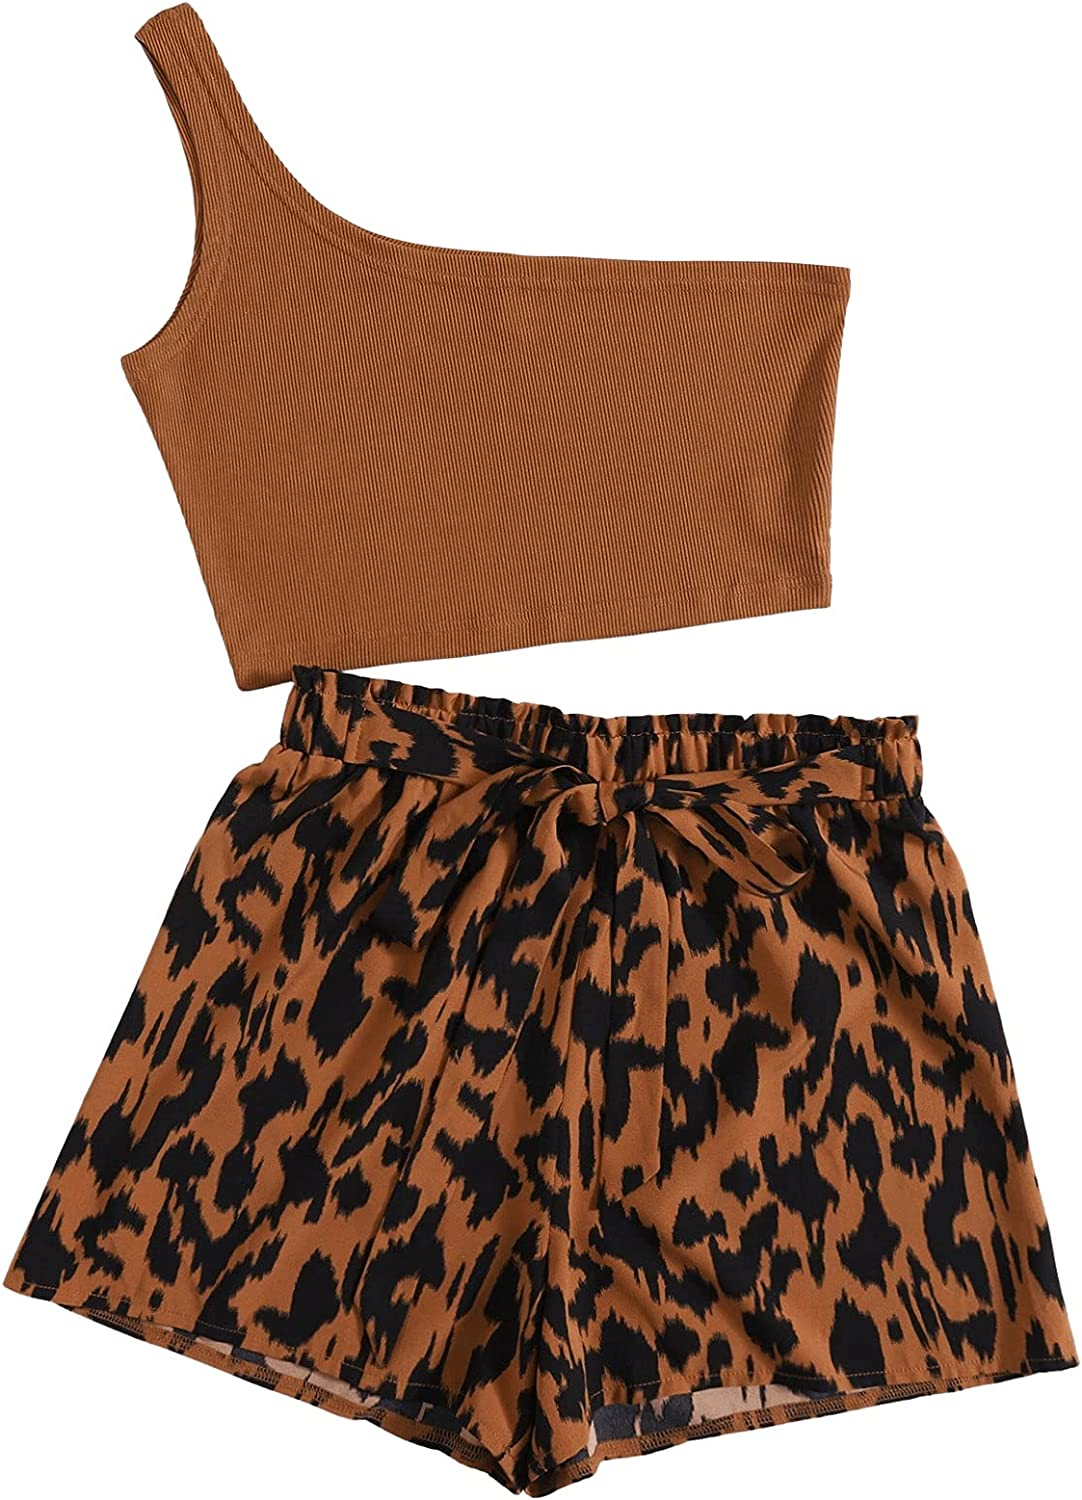 SOLY HUX Women's Plus Size One Shoulder Crop Top with Shorts Set 2 Piece Outfits